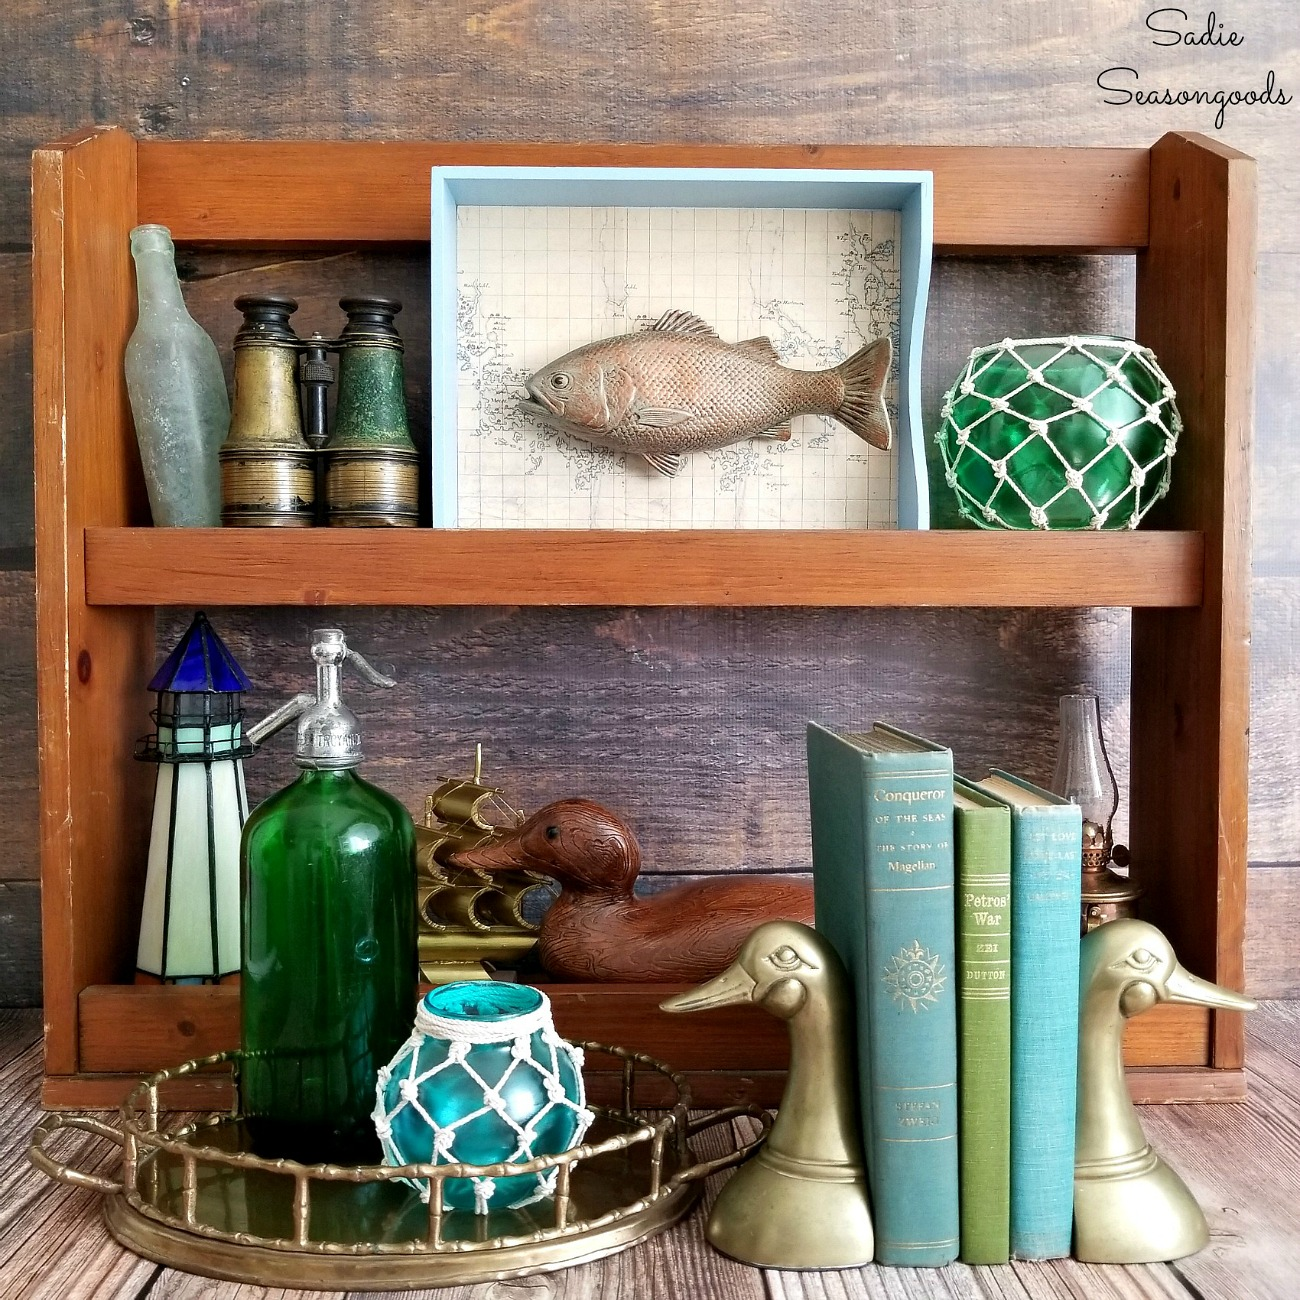 How to find lake house decor or lake house decorating ideas at the thrift store and with upcycling ideas by Sadie Seasongoods / www.sadieseasongoods.com